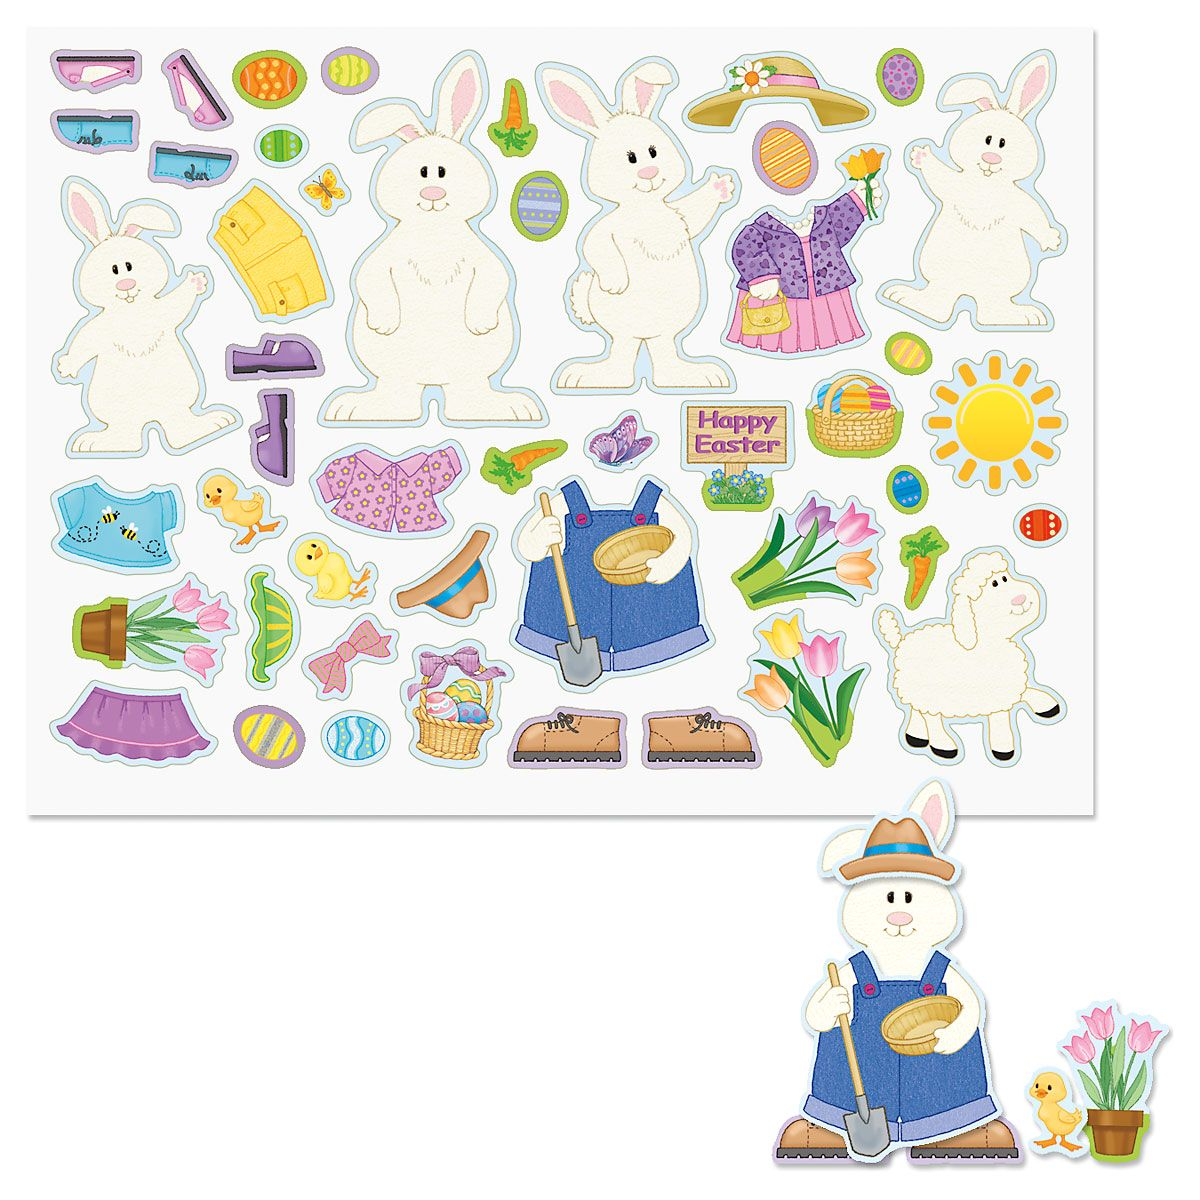 Decorate-Your-Own Bunny Sticker Sheets - BOGO